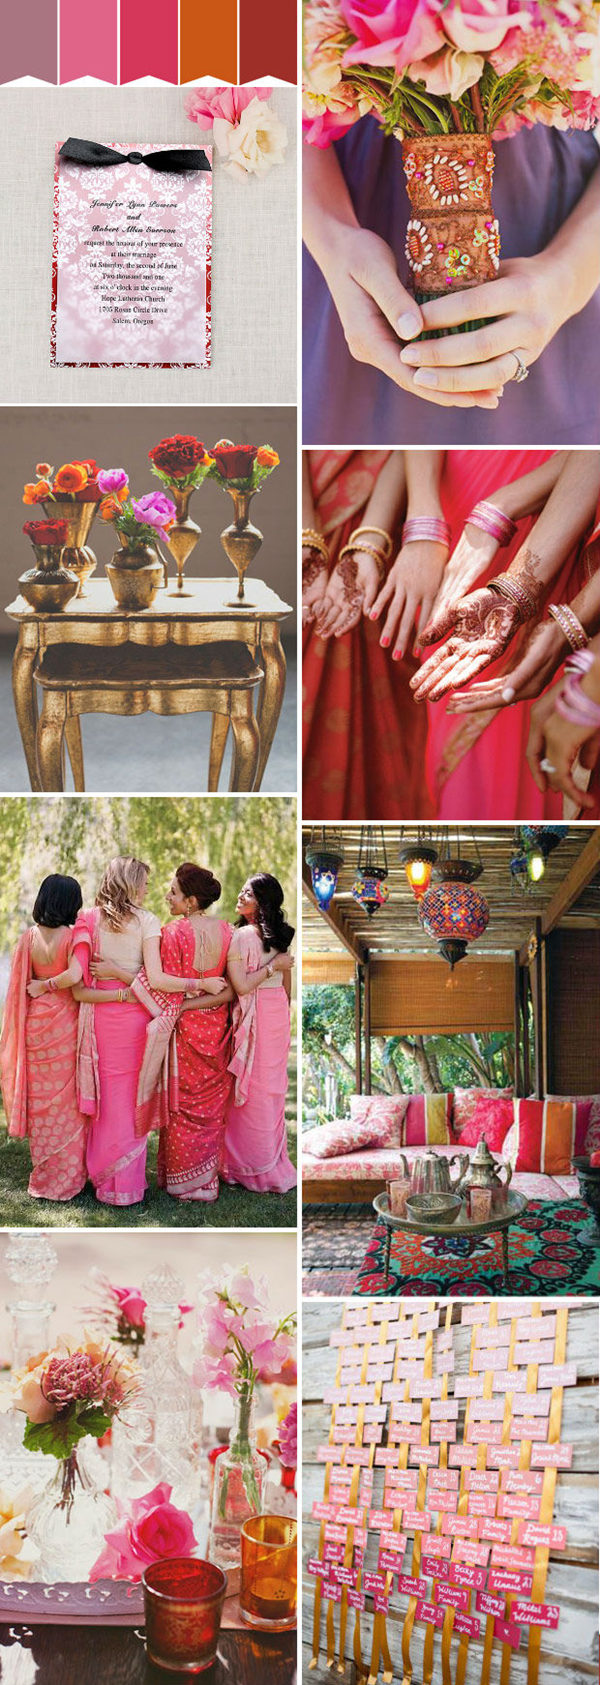 red Indian summer wedding inspiration for 2016 brides